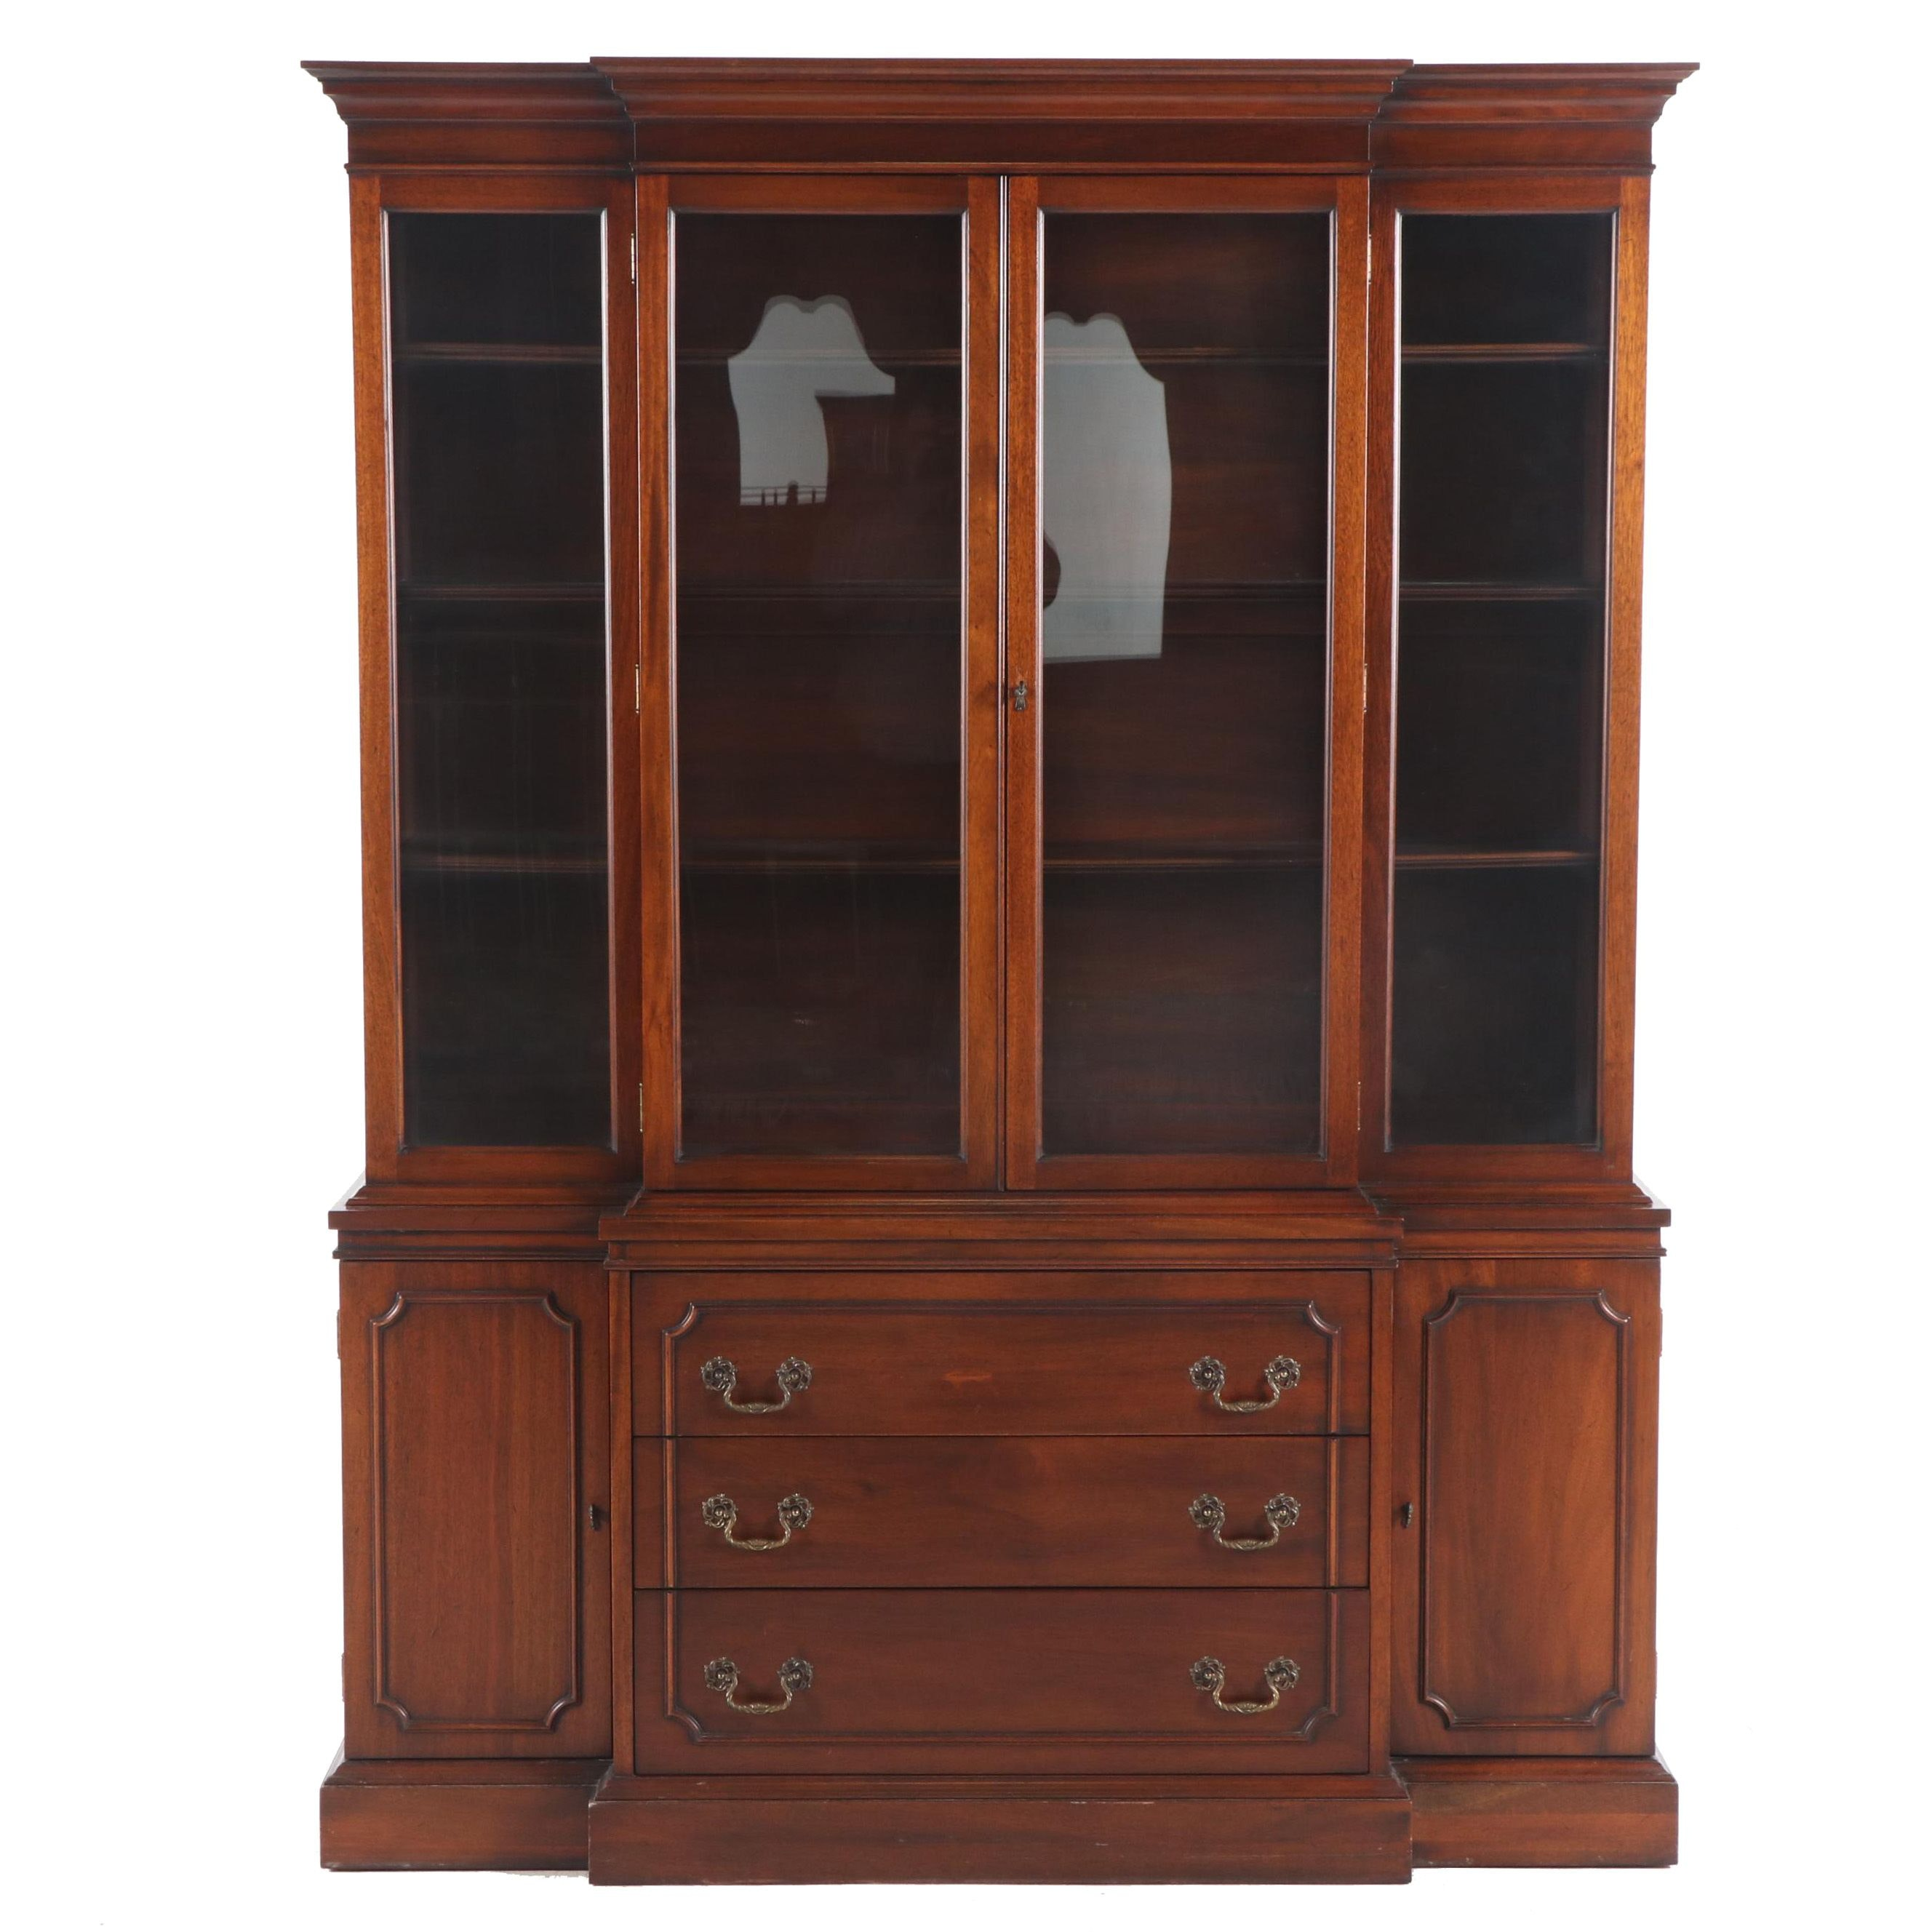 Mahogany Federal Style China Cabinet by Ritter